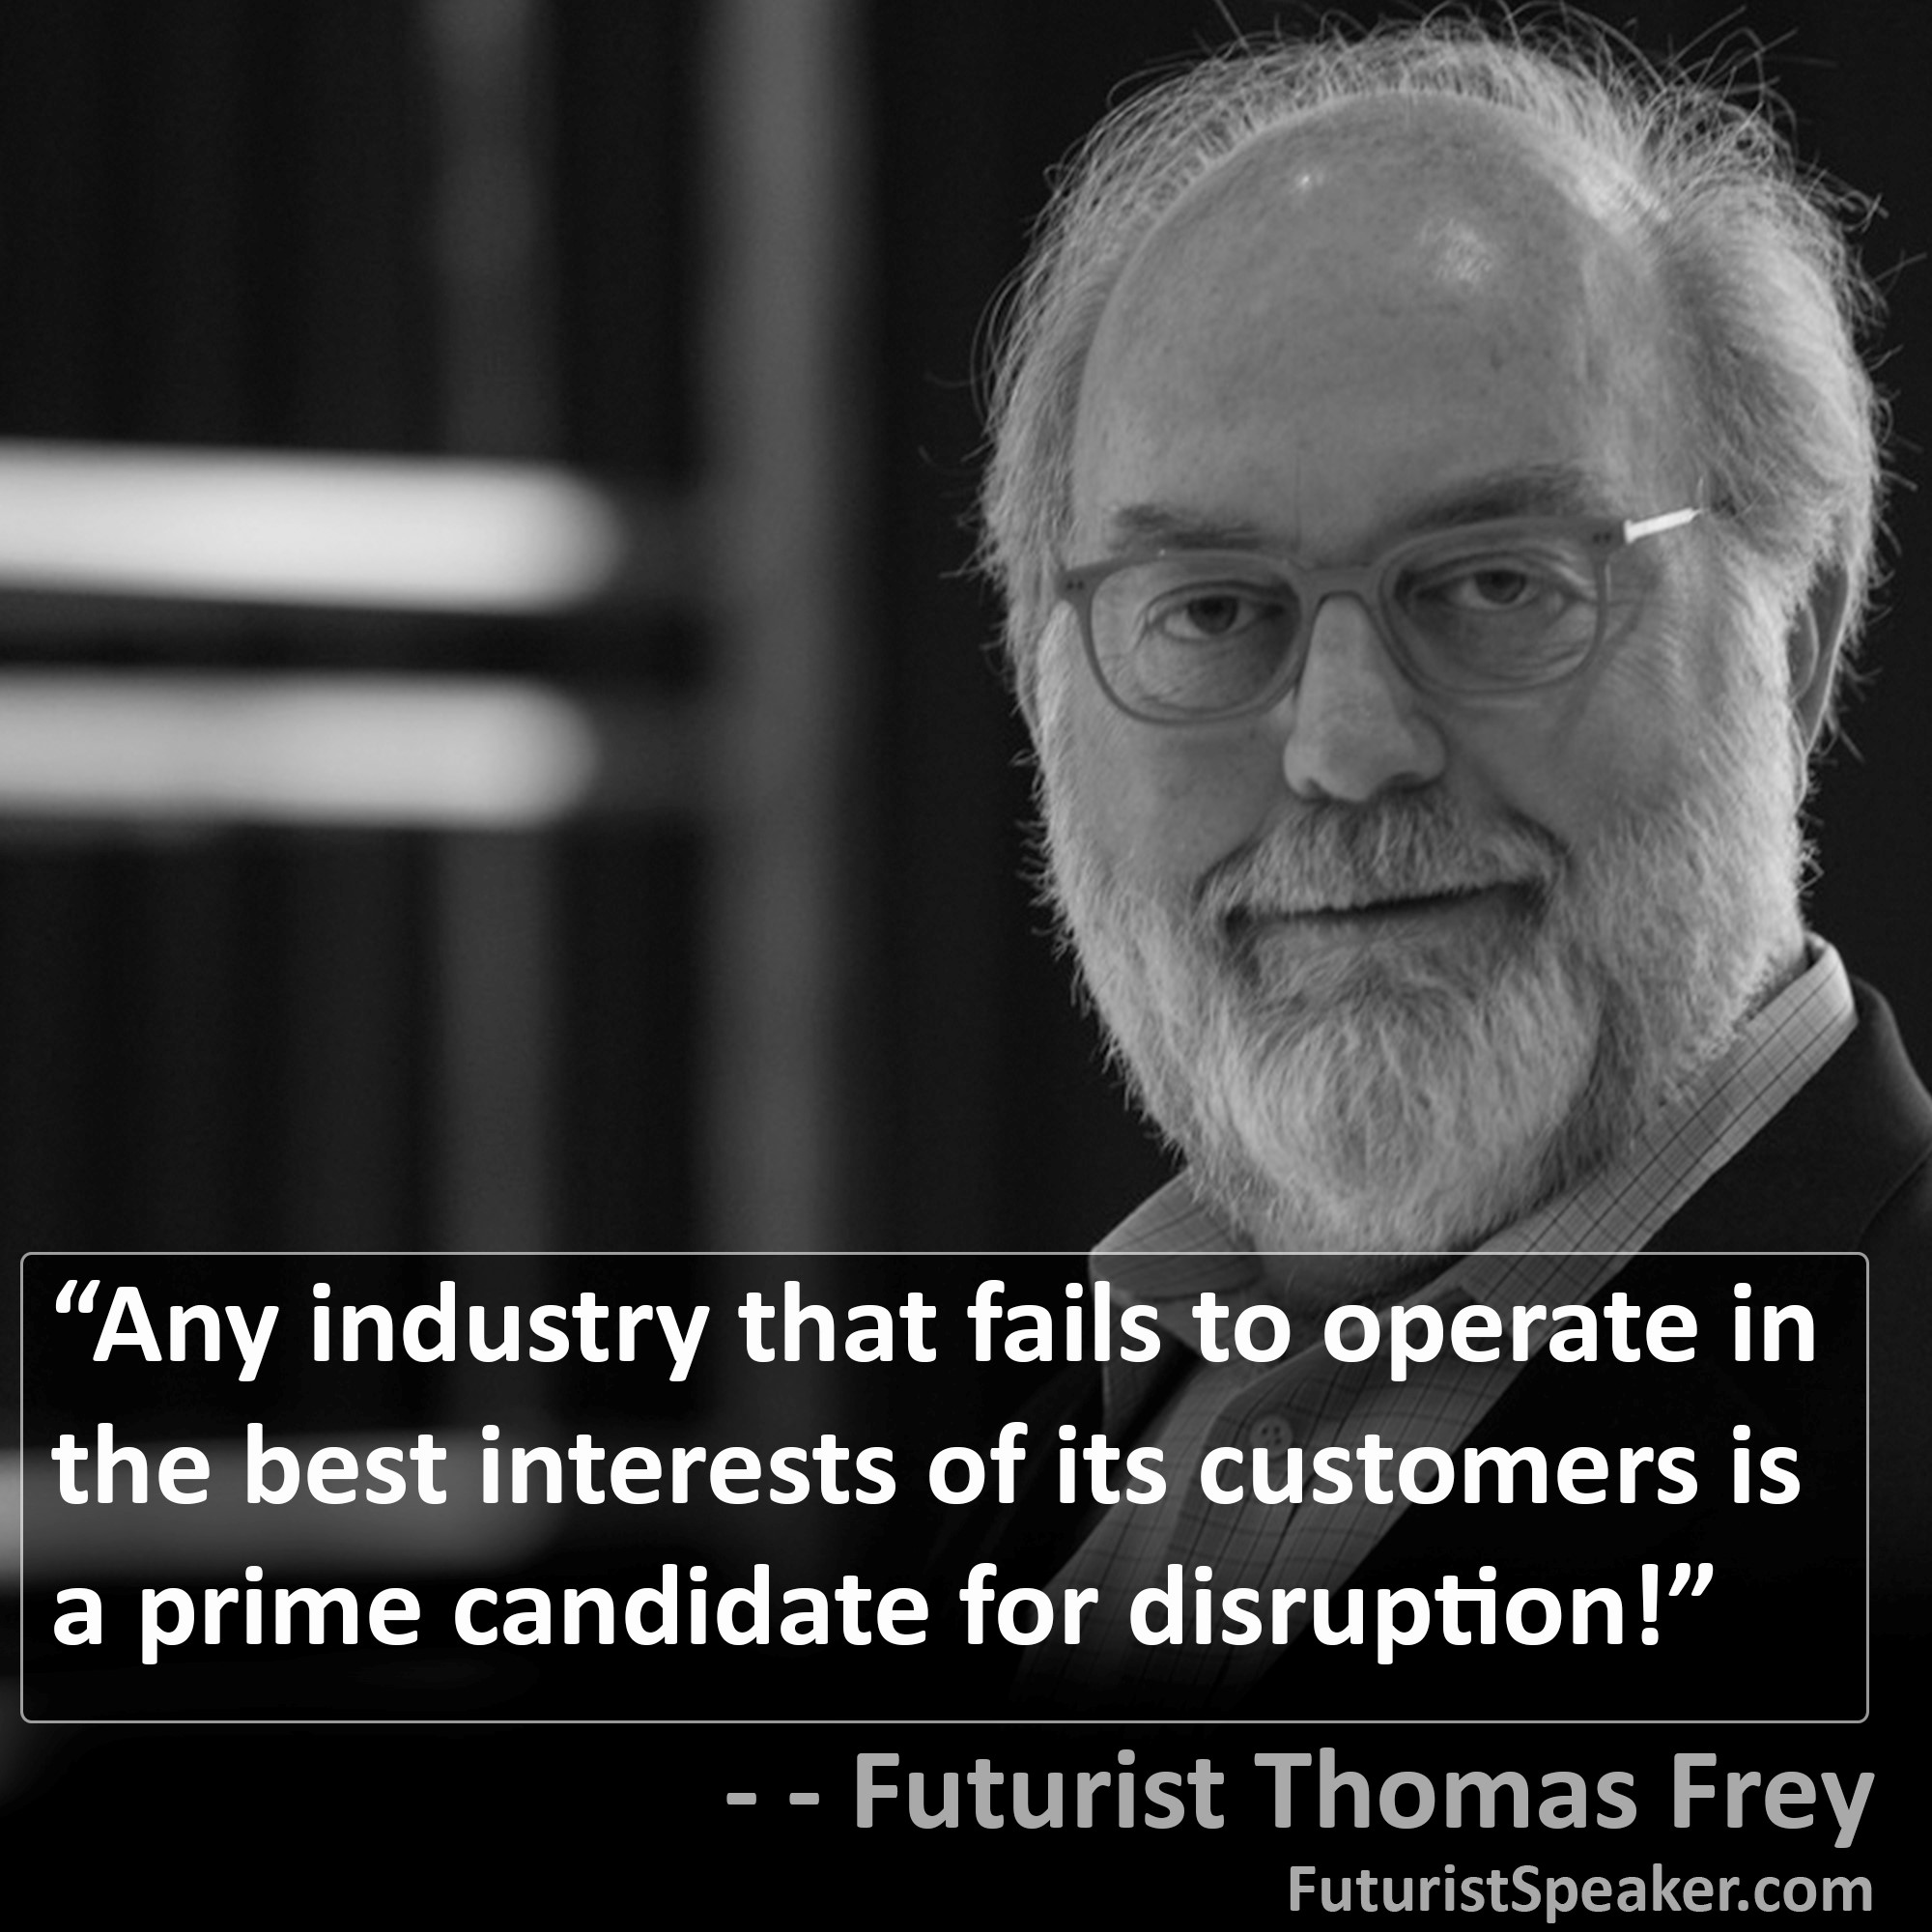 Thomas Frey Futurist Speaker Famous Quote: Any industry that fails to operate in the best interests of its customers is a prime candidate for disruption.